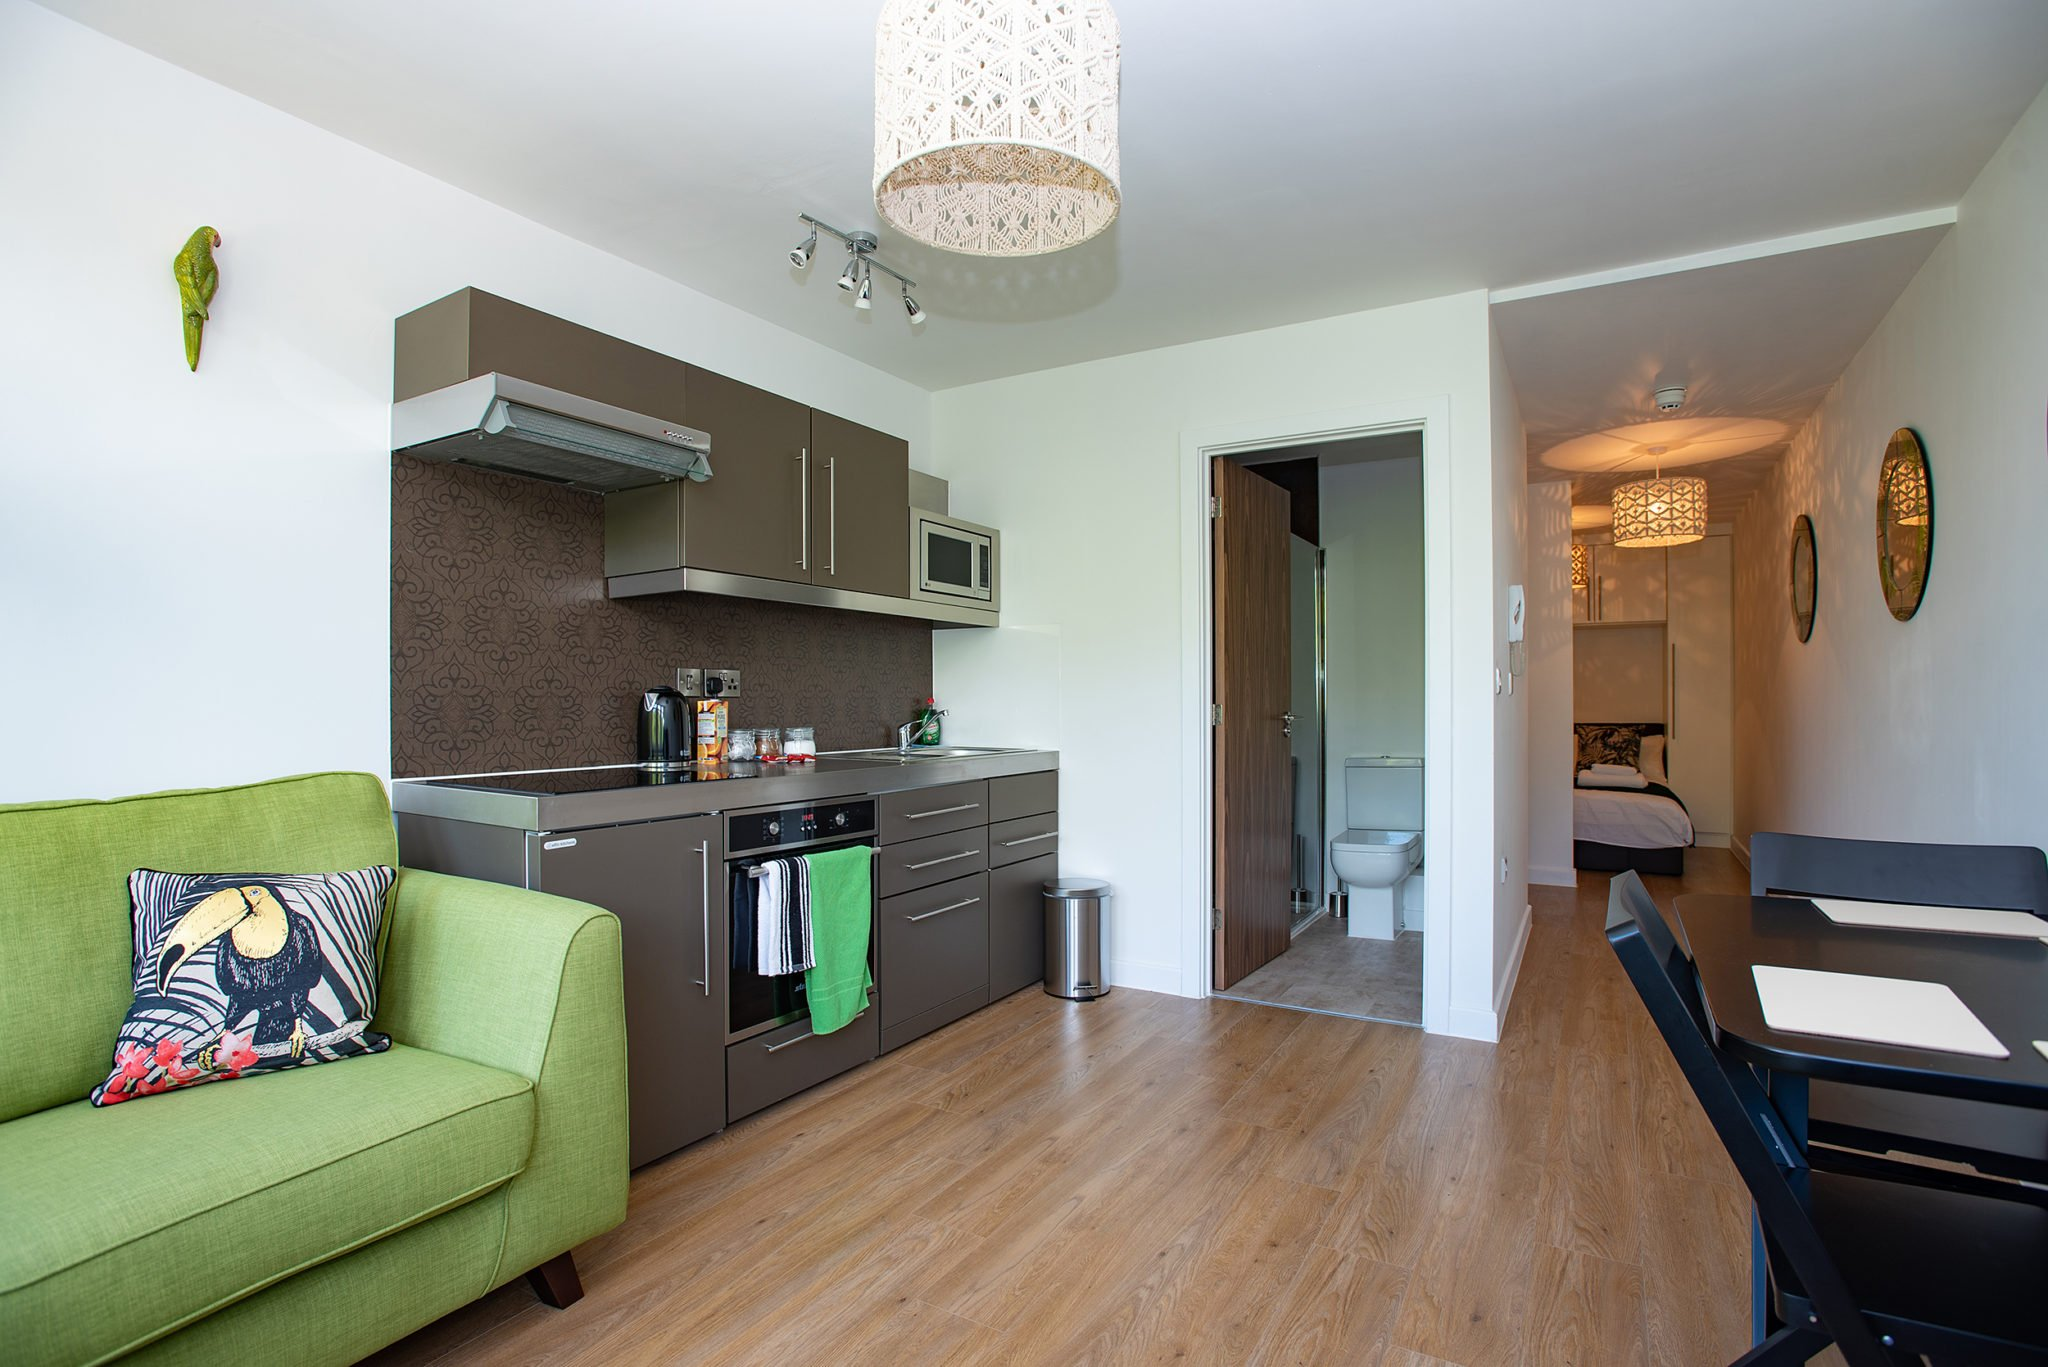 Furnished-Accommodation-Southampton-in-Portcullis-House-|-Cheap-Short-Let-Apartments-near-Southampton-port-|-Lift,-Fully-equipped-kitchen-|-Urban-Stay